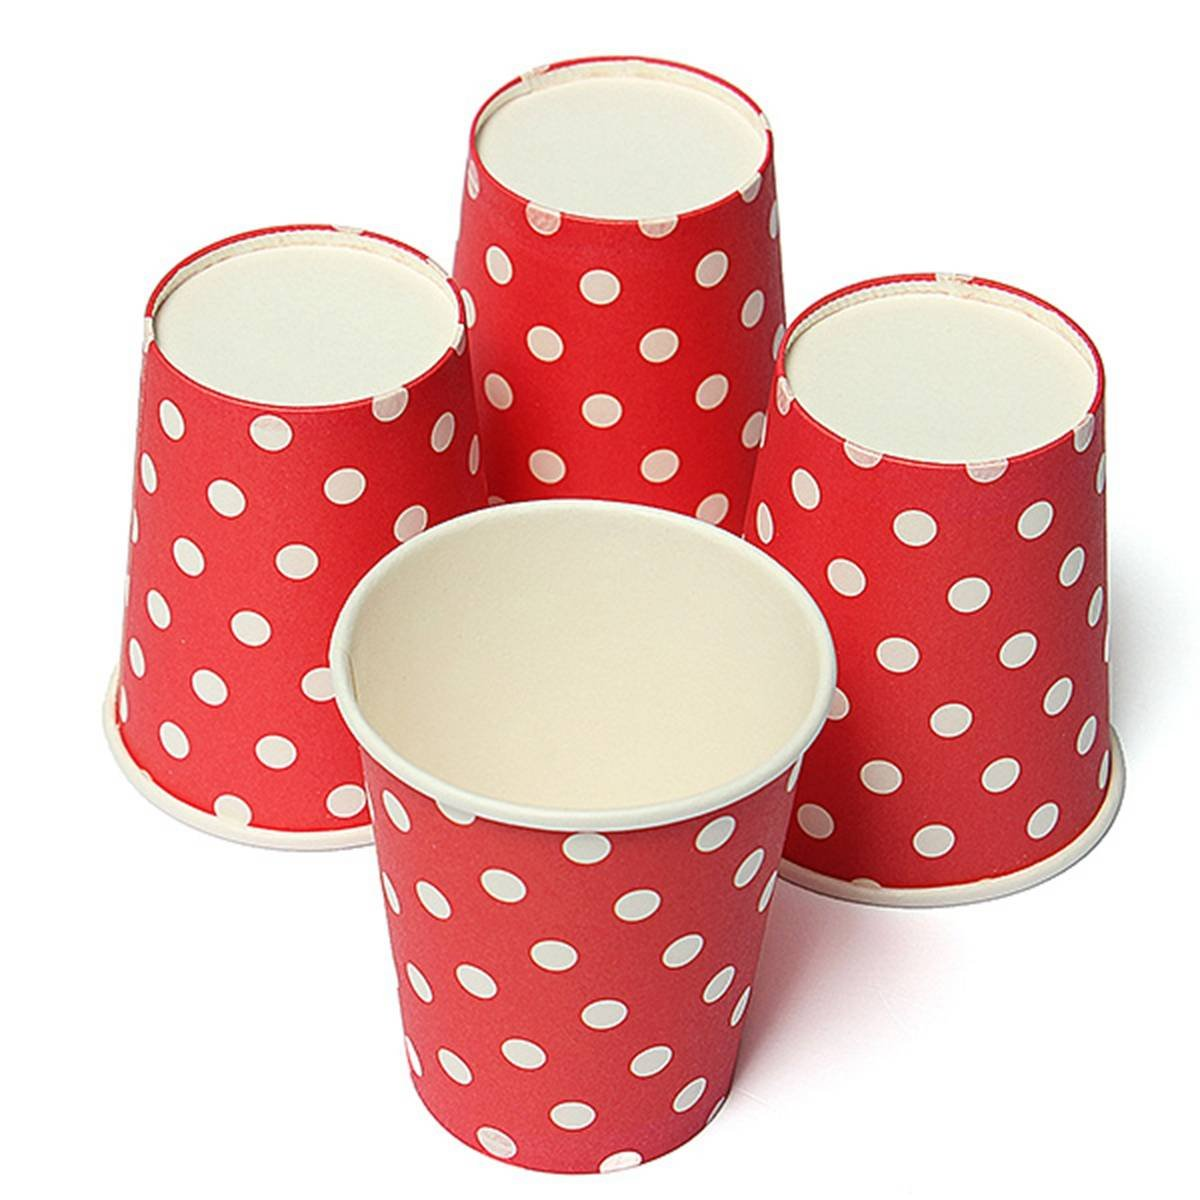 50pcs Polka Dot Paper Paper Cups Case Disposable Tableware Wedding Birthday Decorations Red